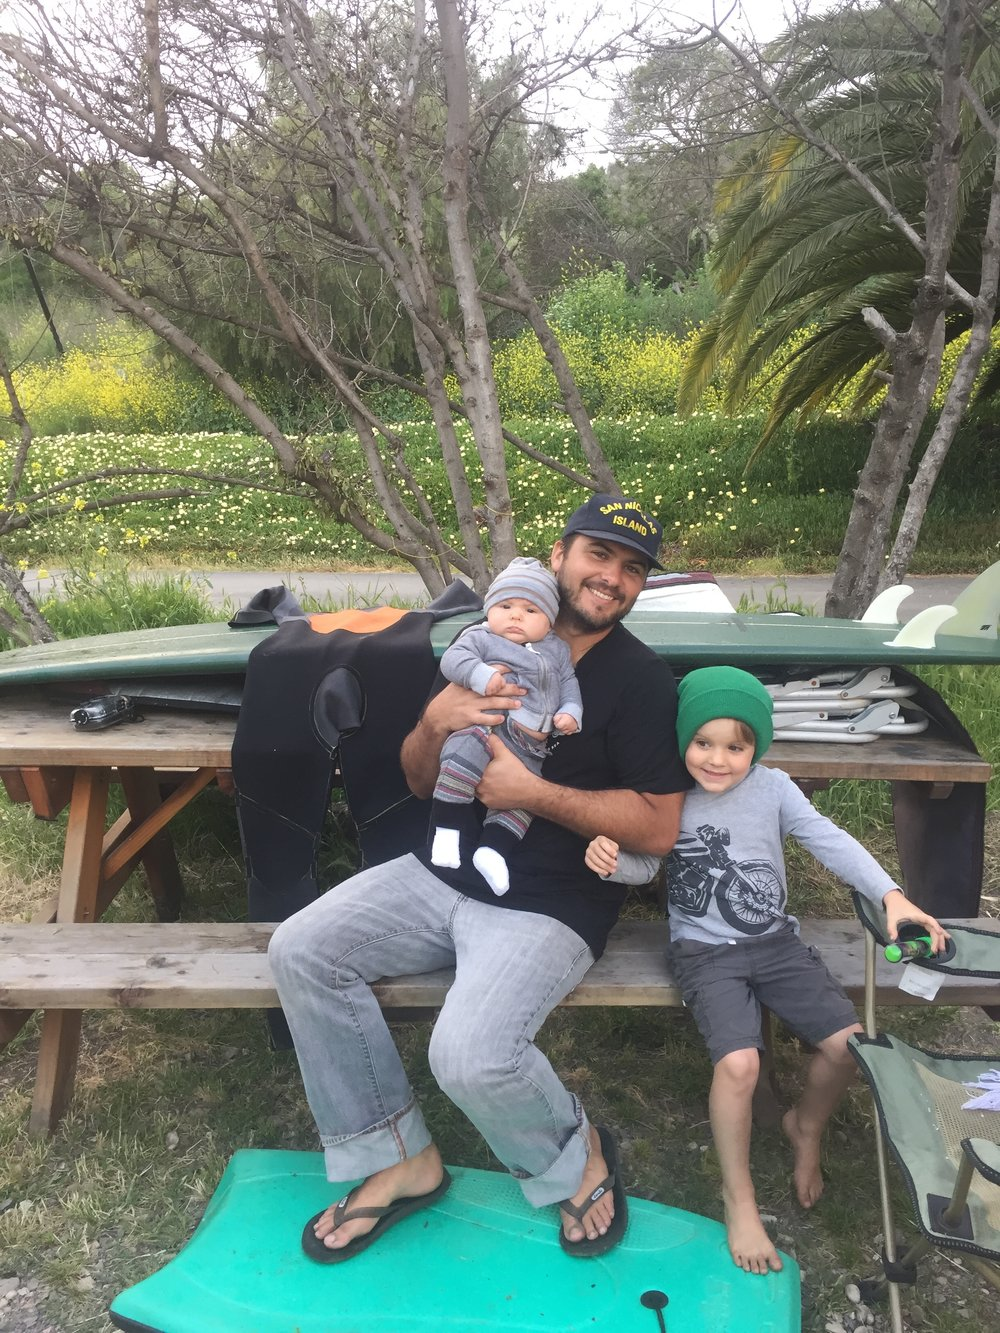 Camping with my boys.